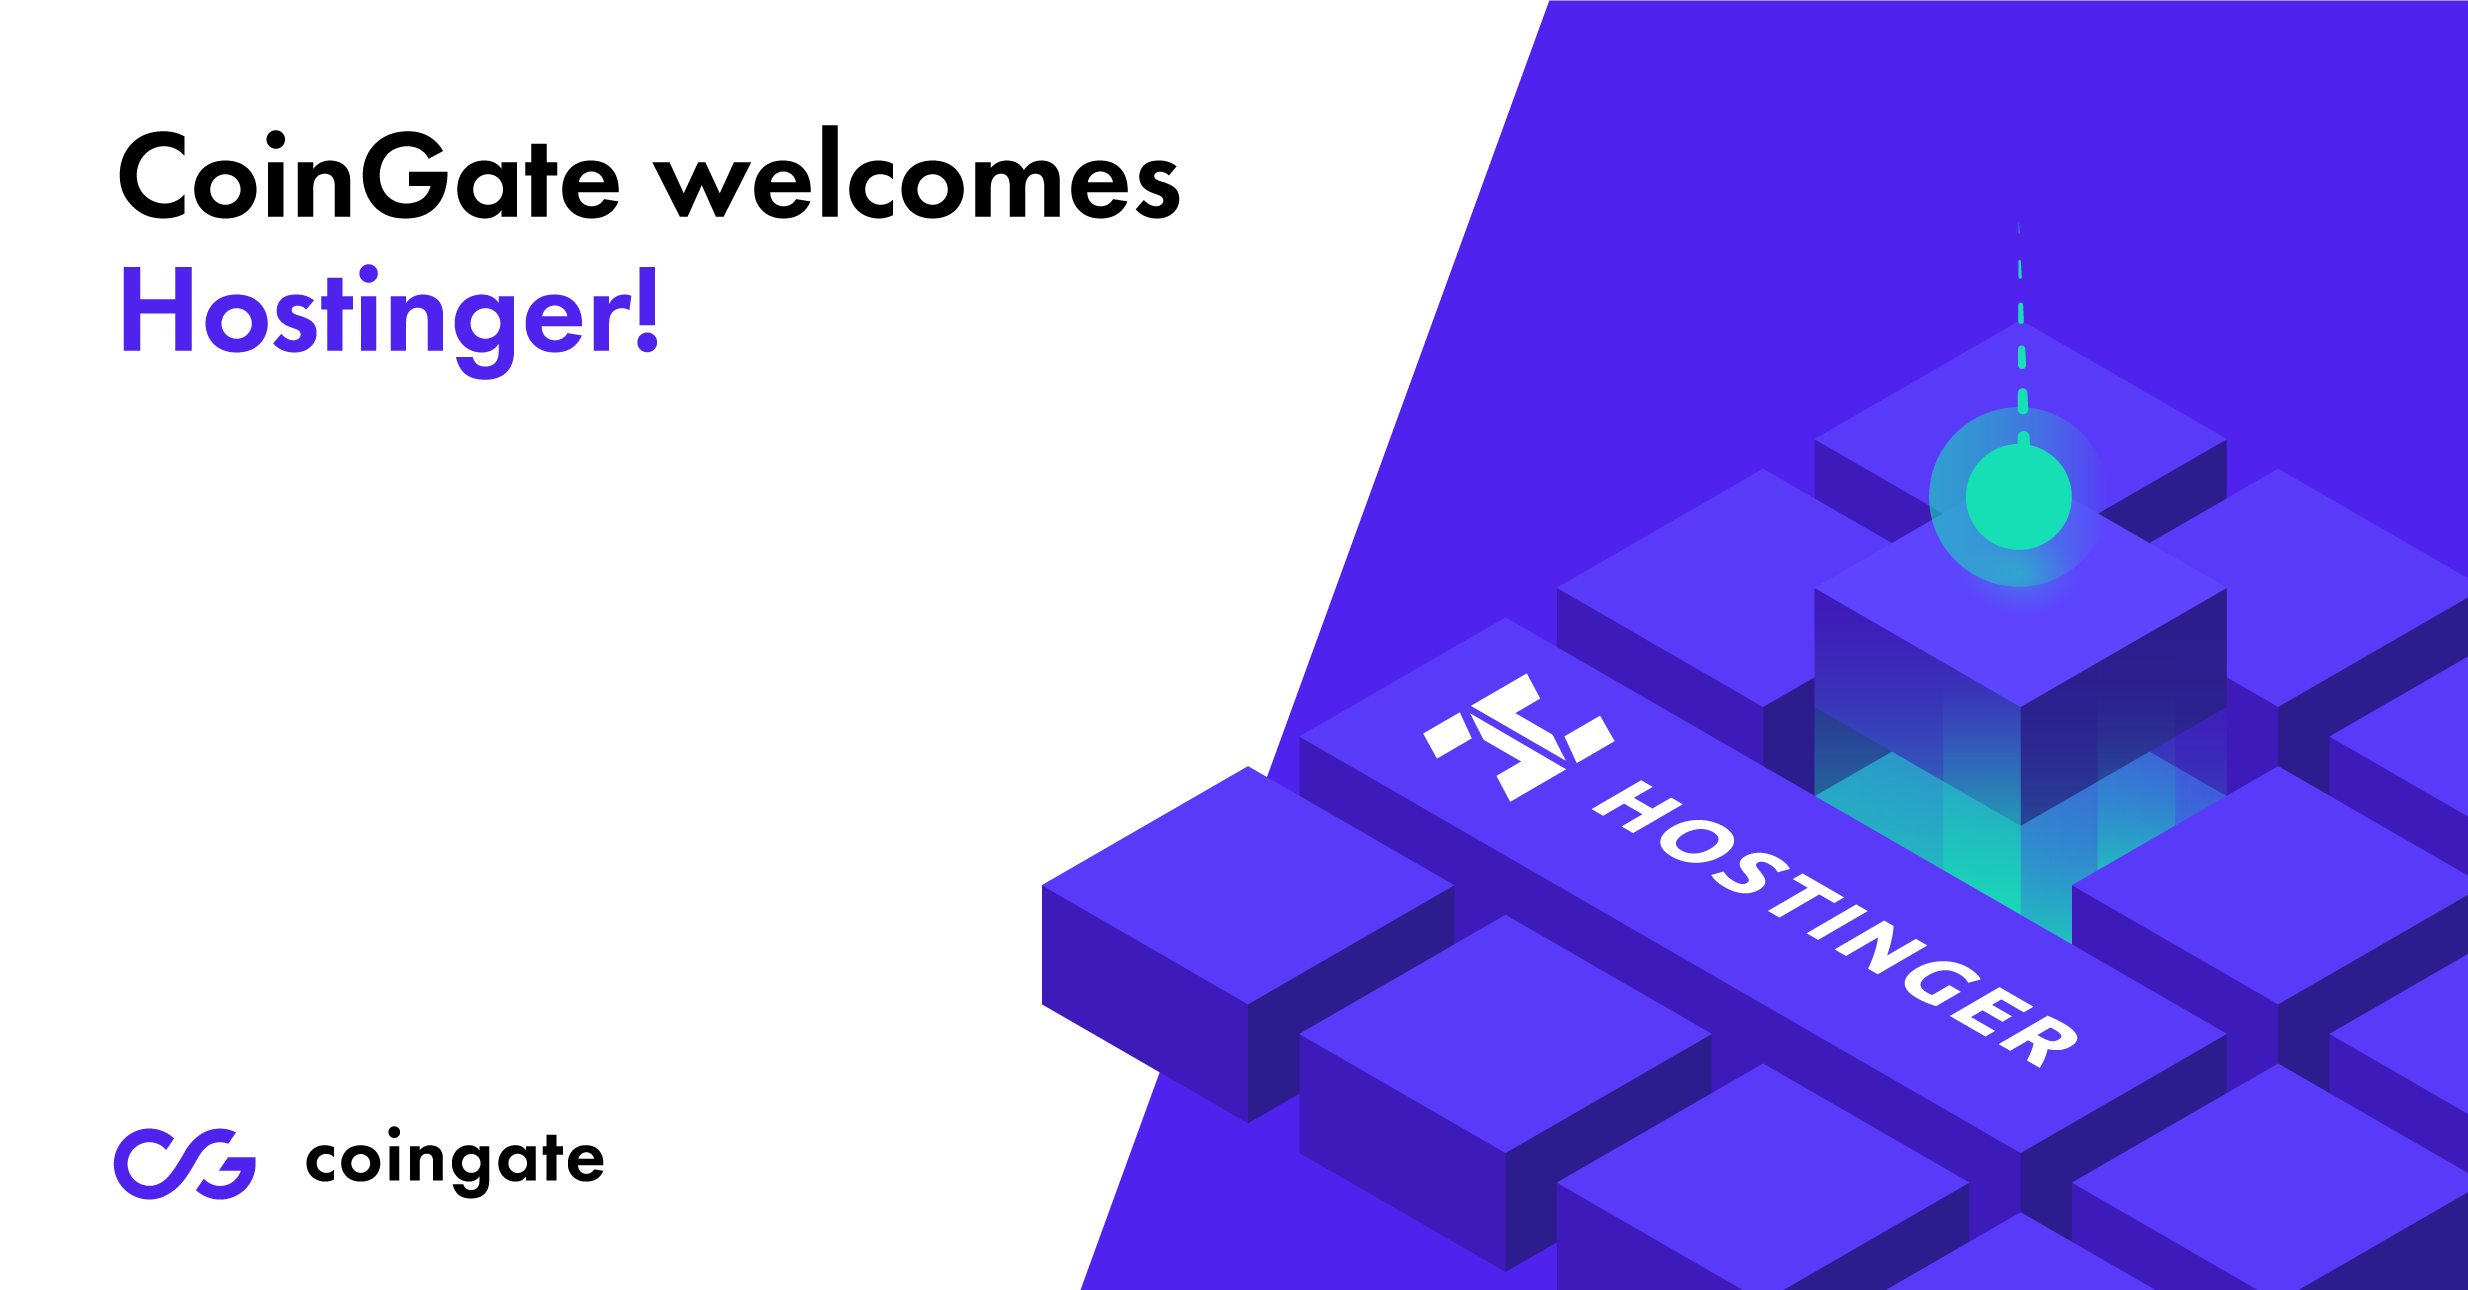 CoinGate welcomes Hostinger!